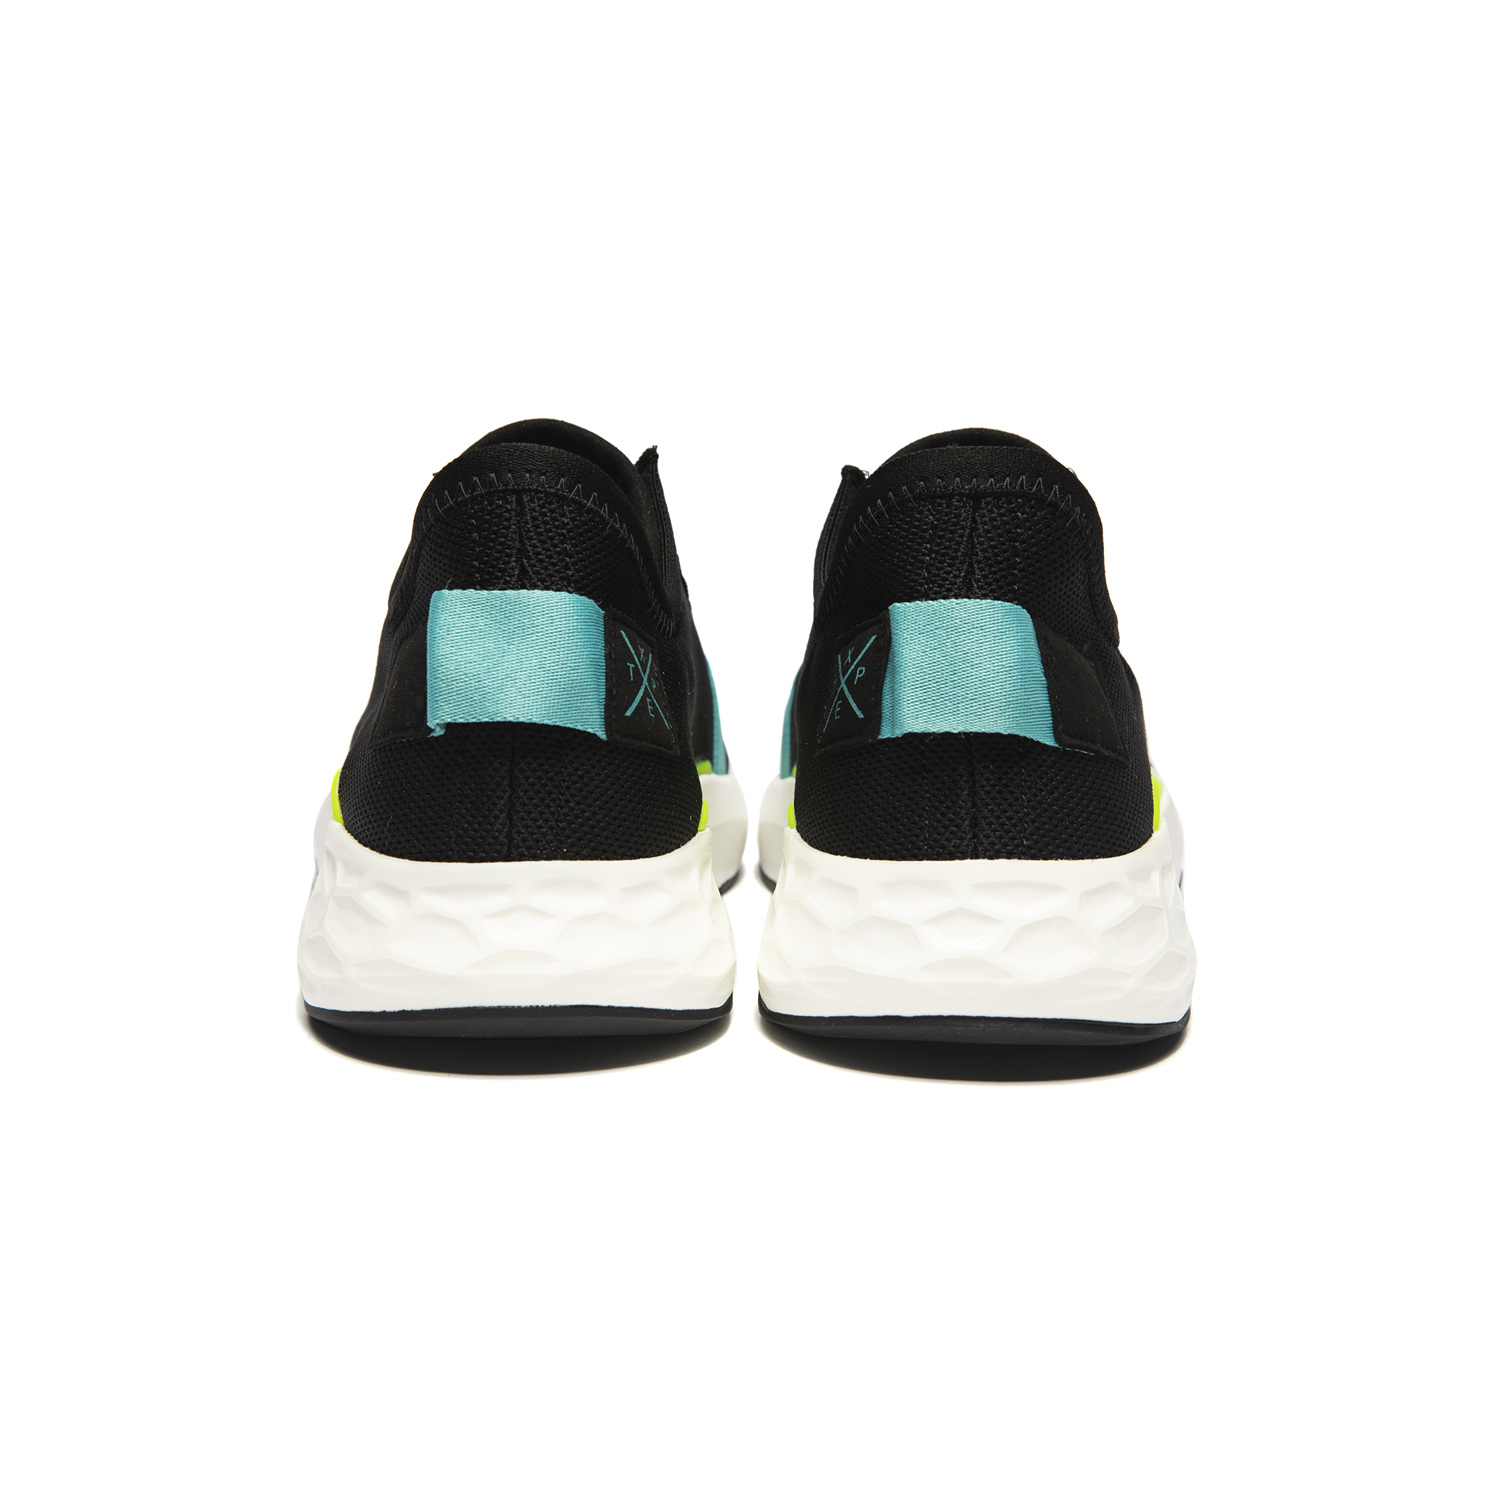 Men's Sports Casual Shoes Urban Shoes